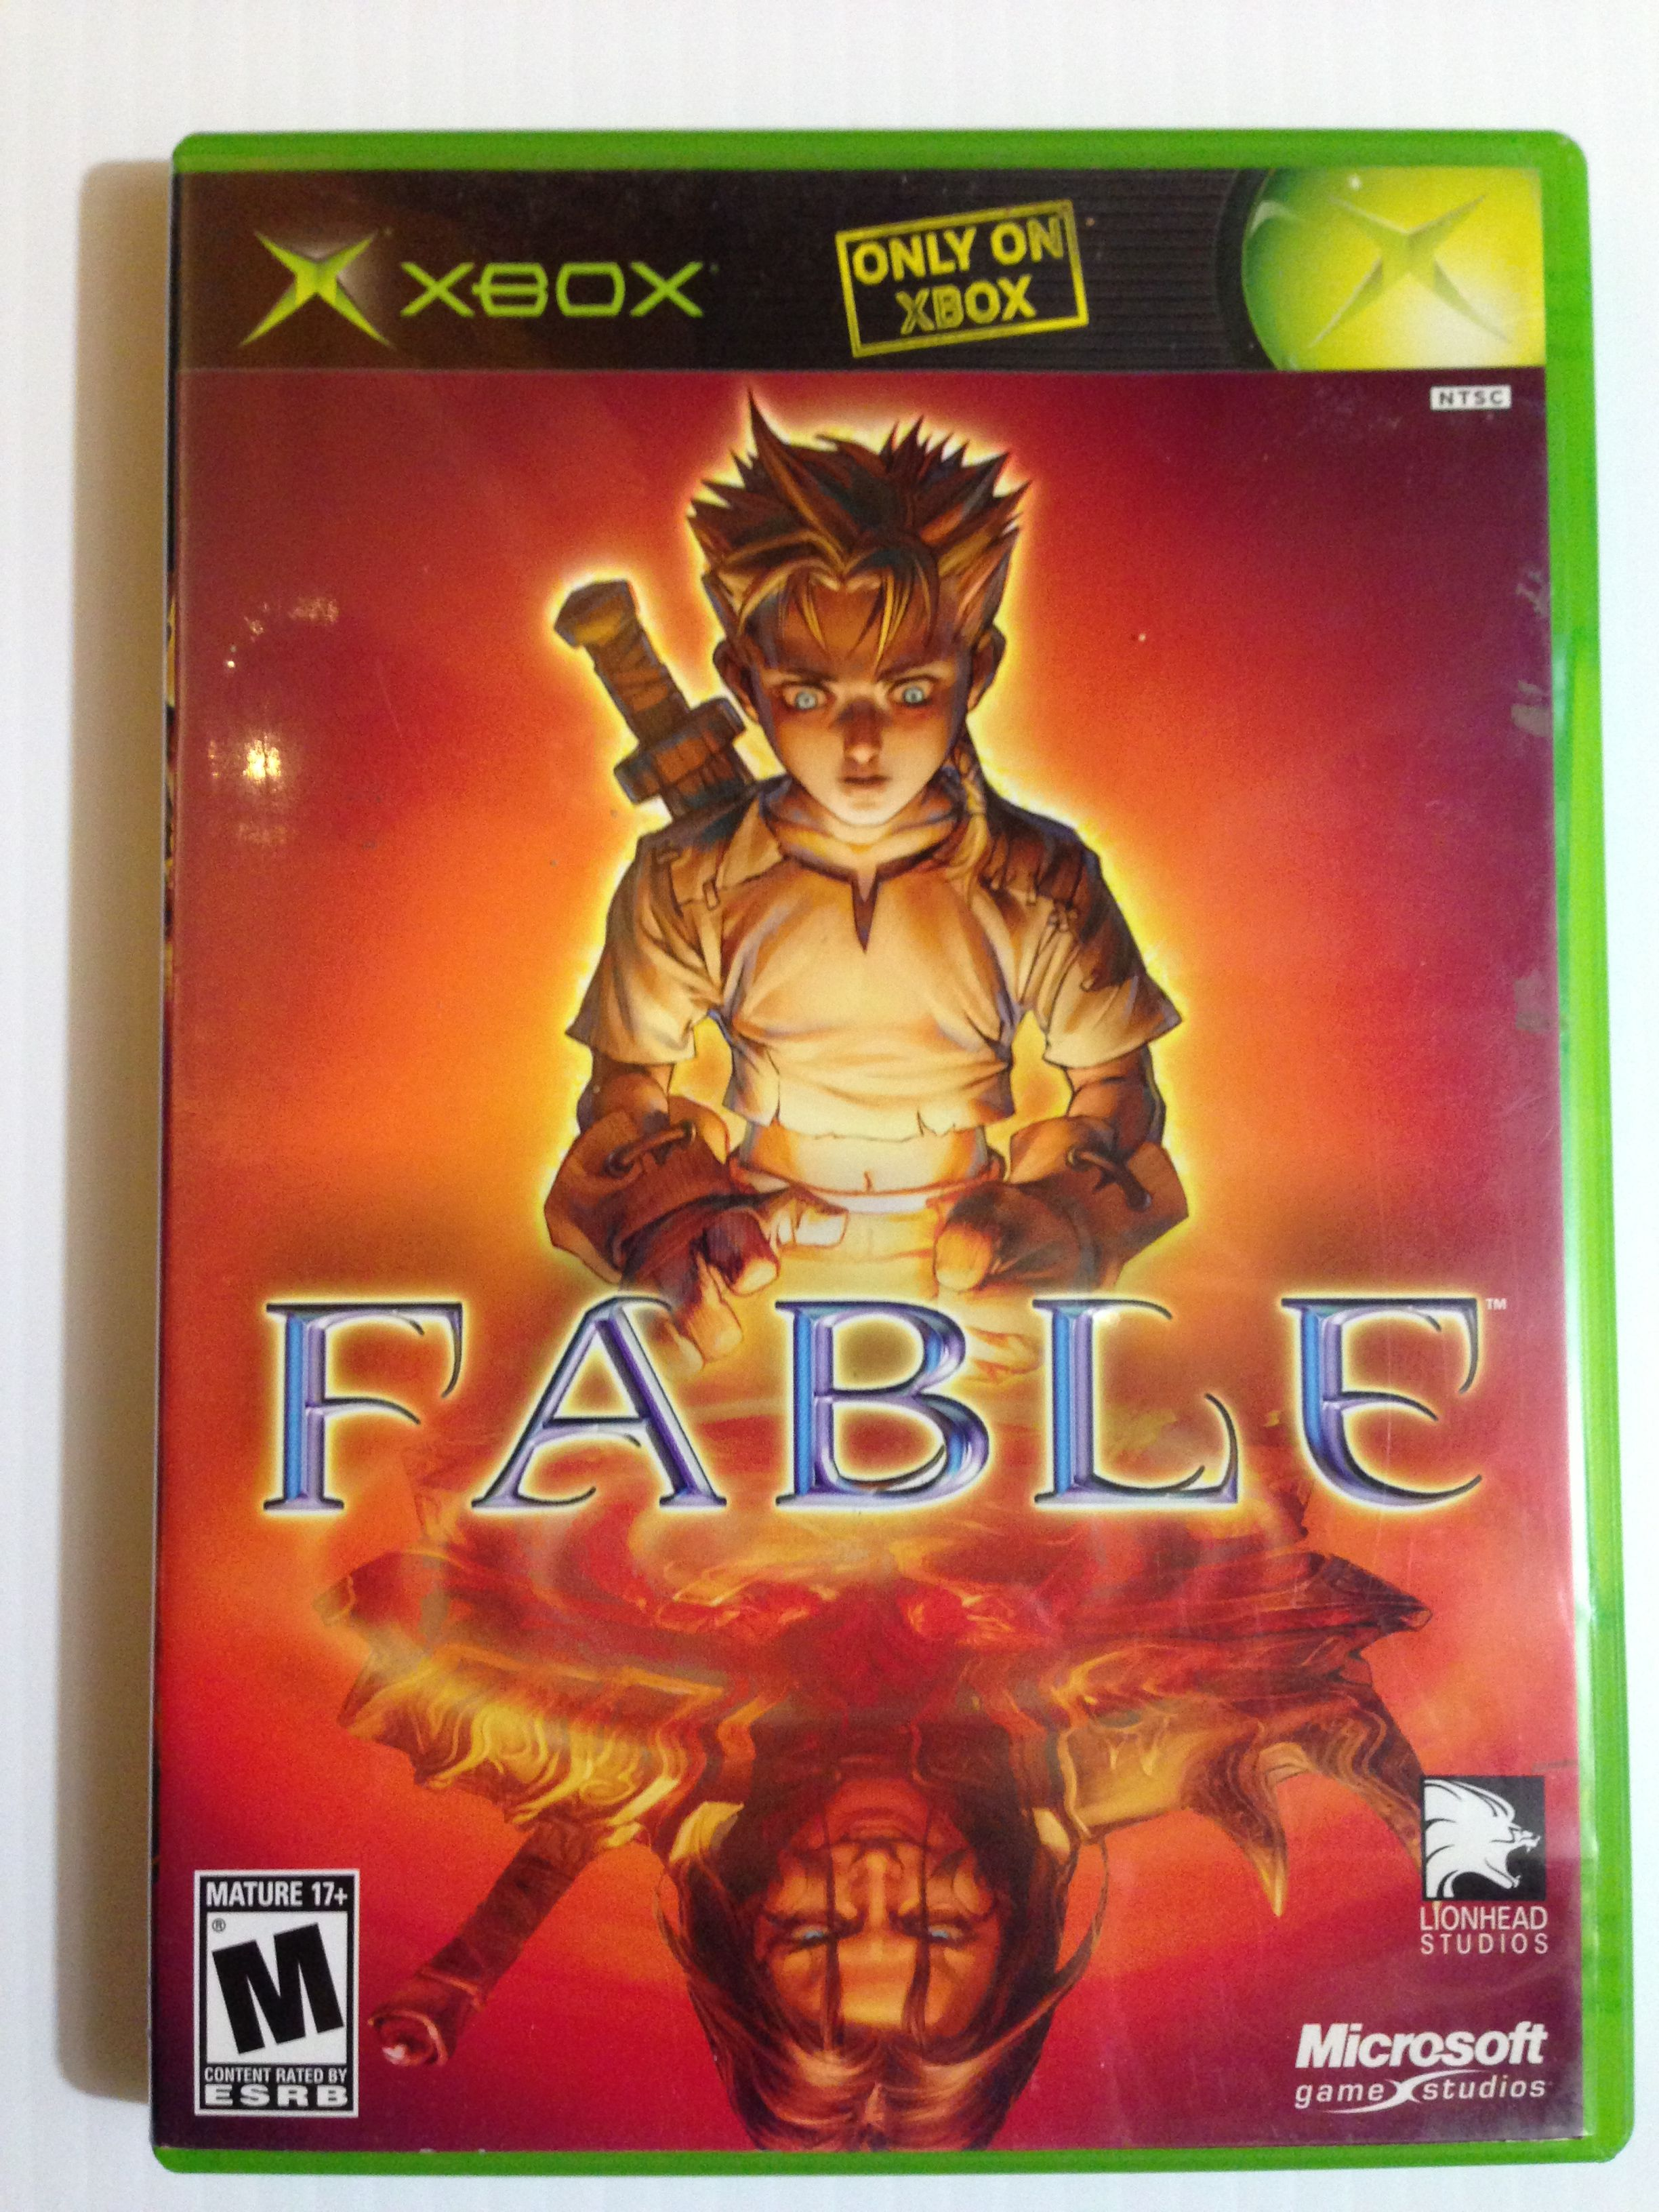 Pin by Lee on My XBOX Collection Xbox games, Fables, Xbox